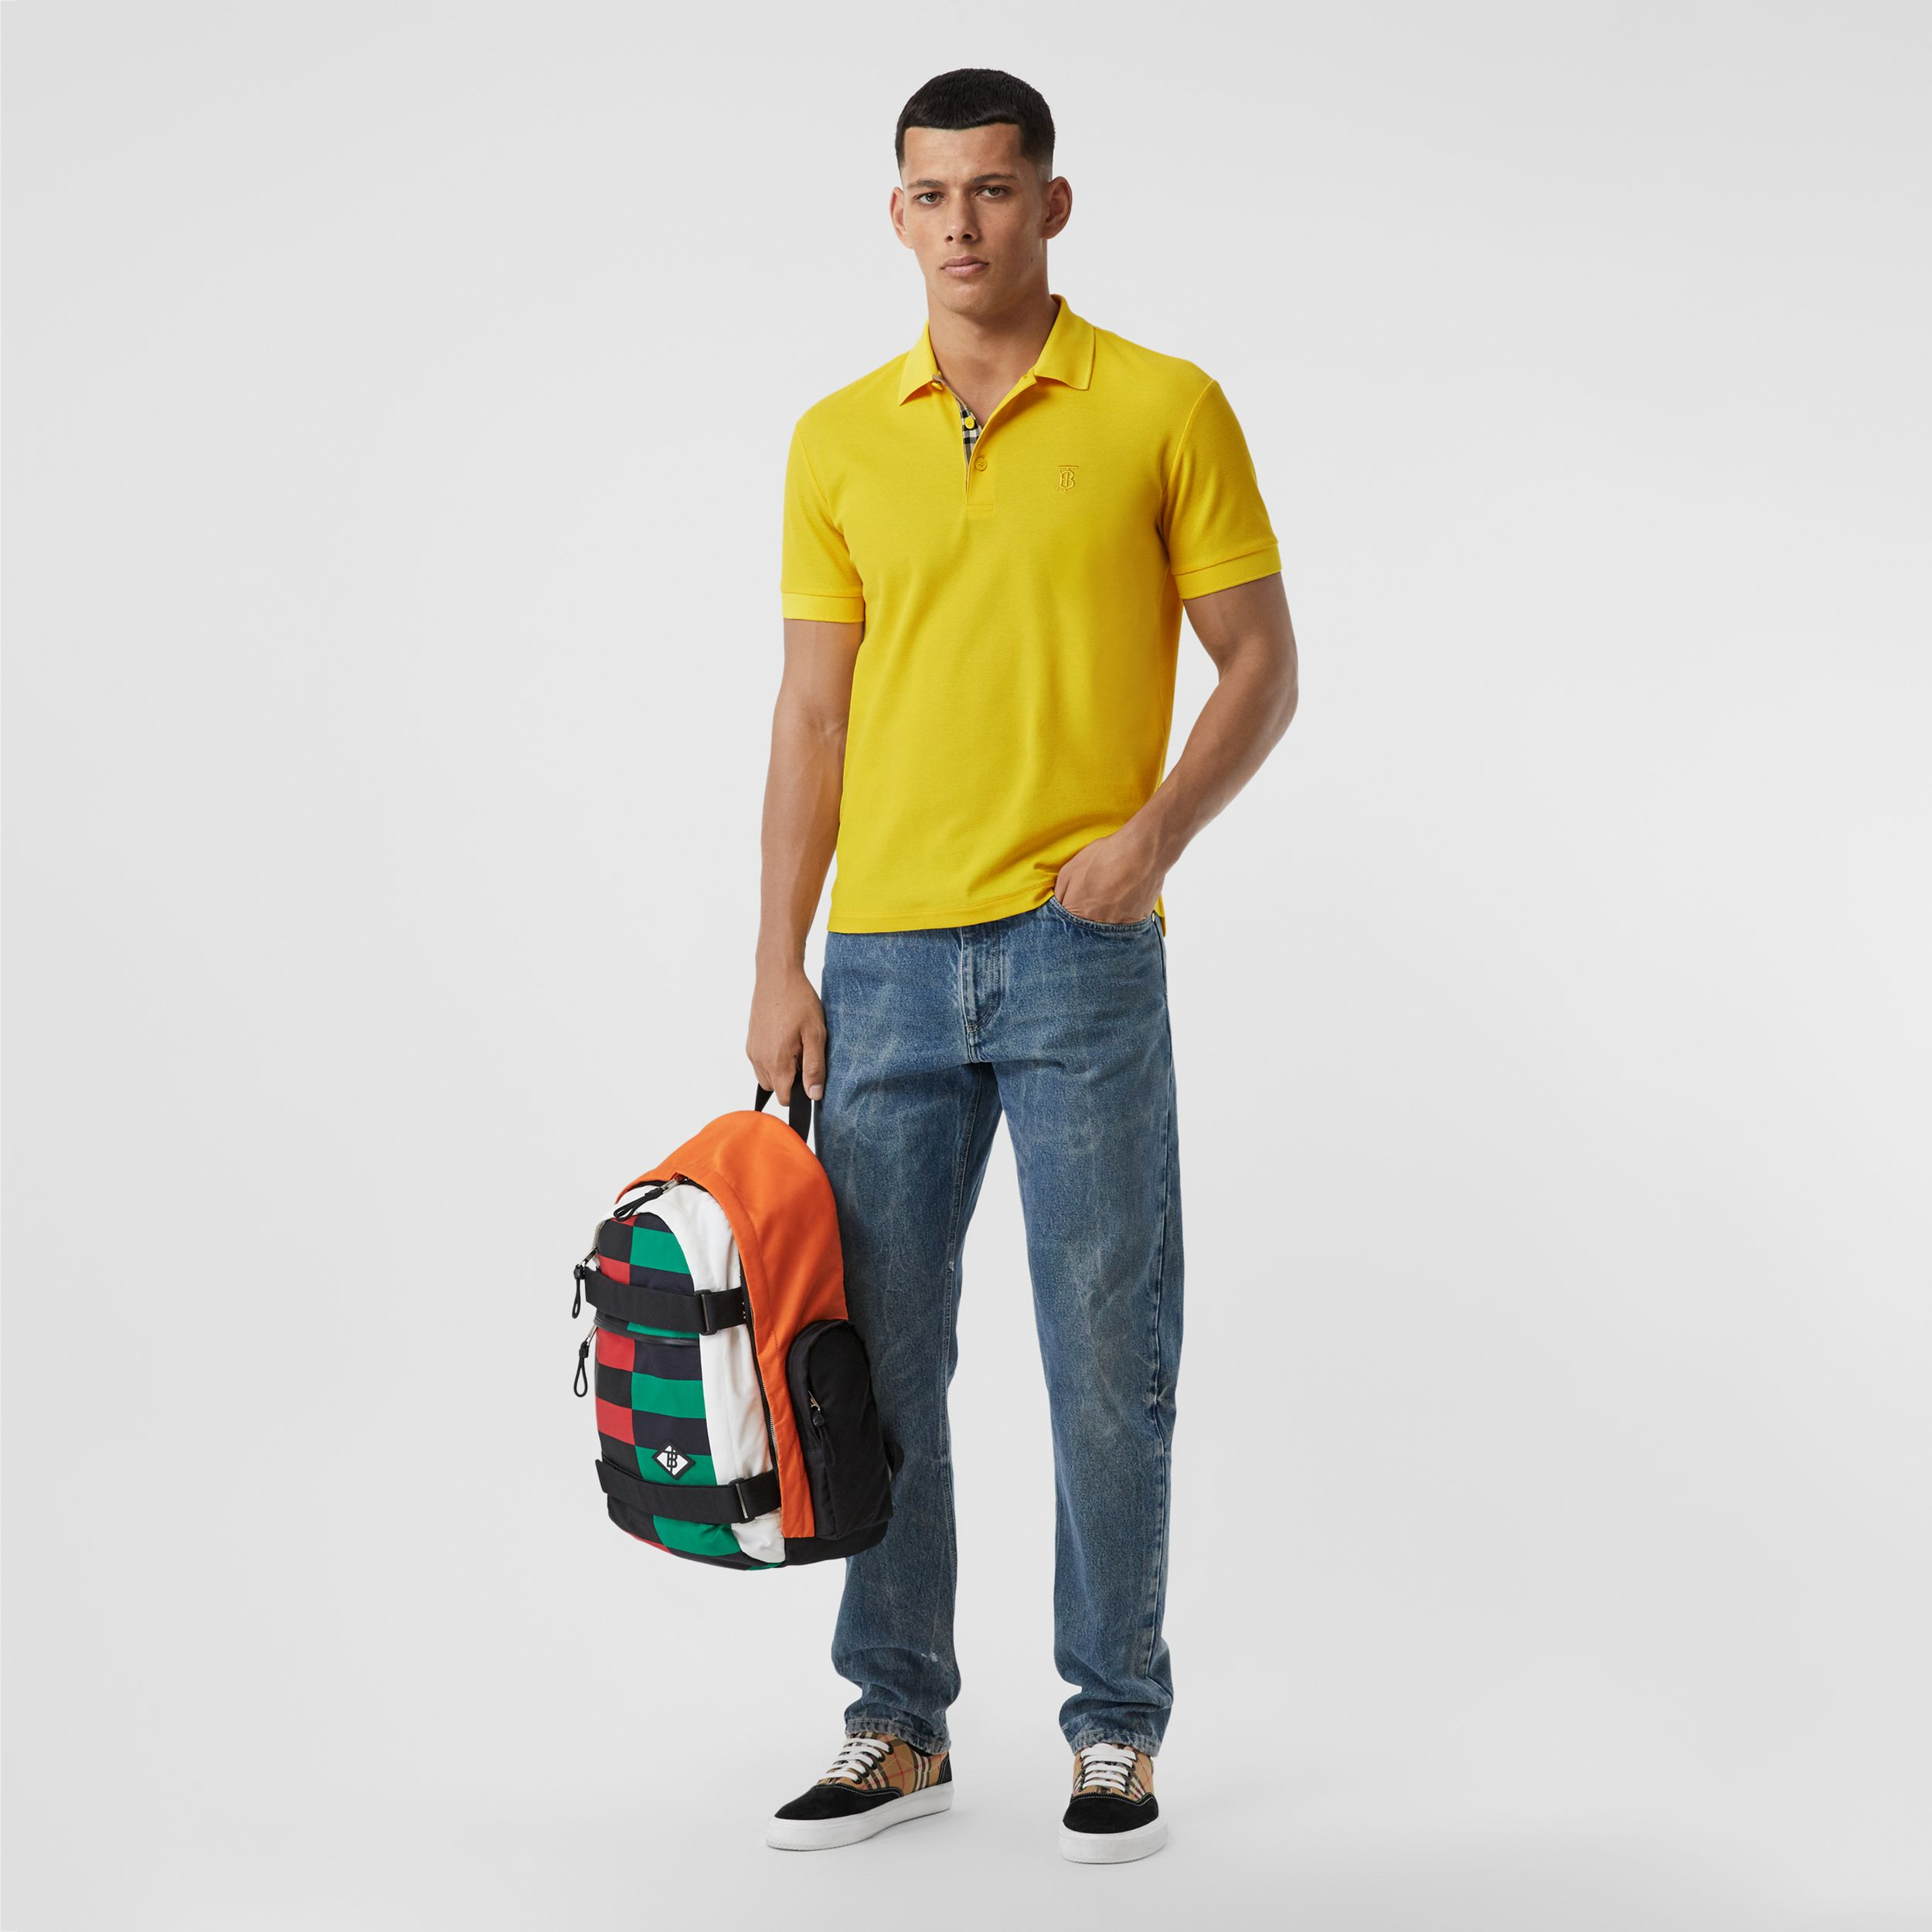 Monogram Motif Cotton Piqué Polo Shirt in Canary Yellow - Men | Burberry - 1